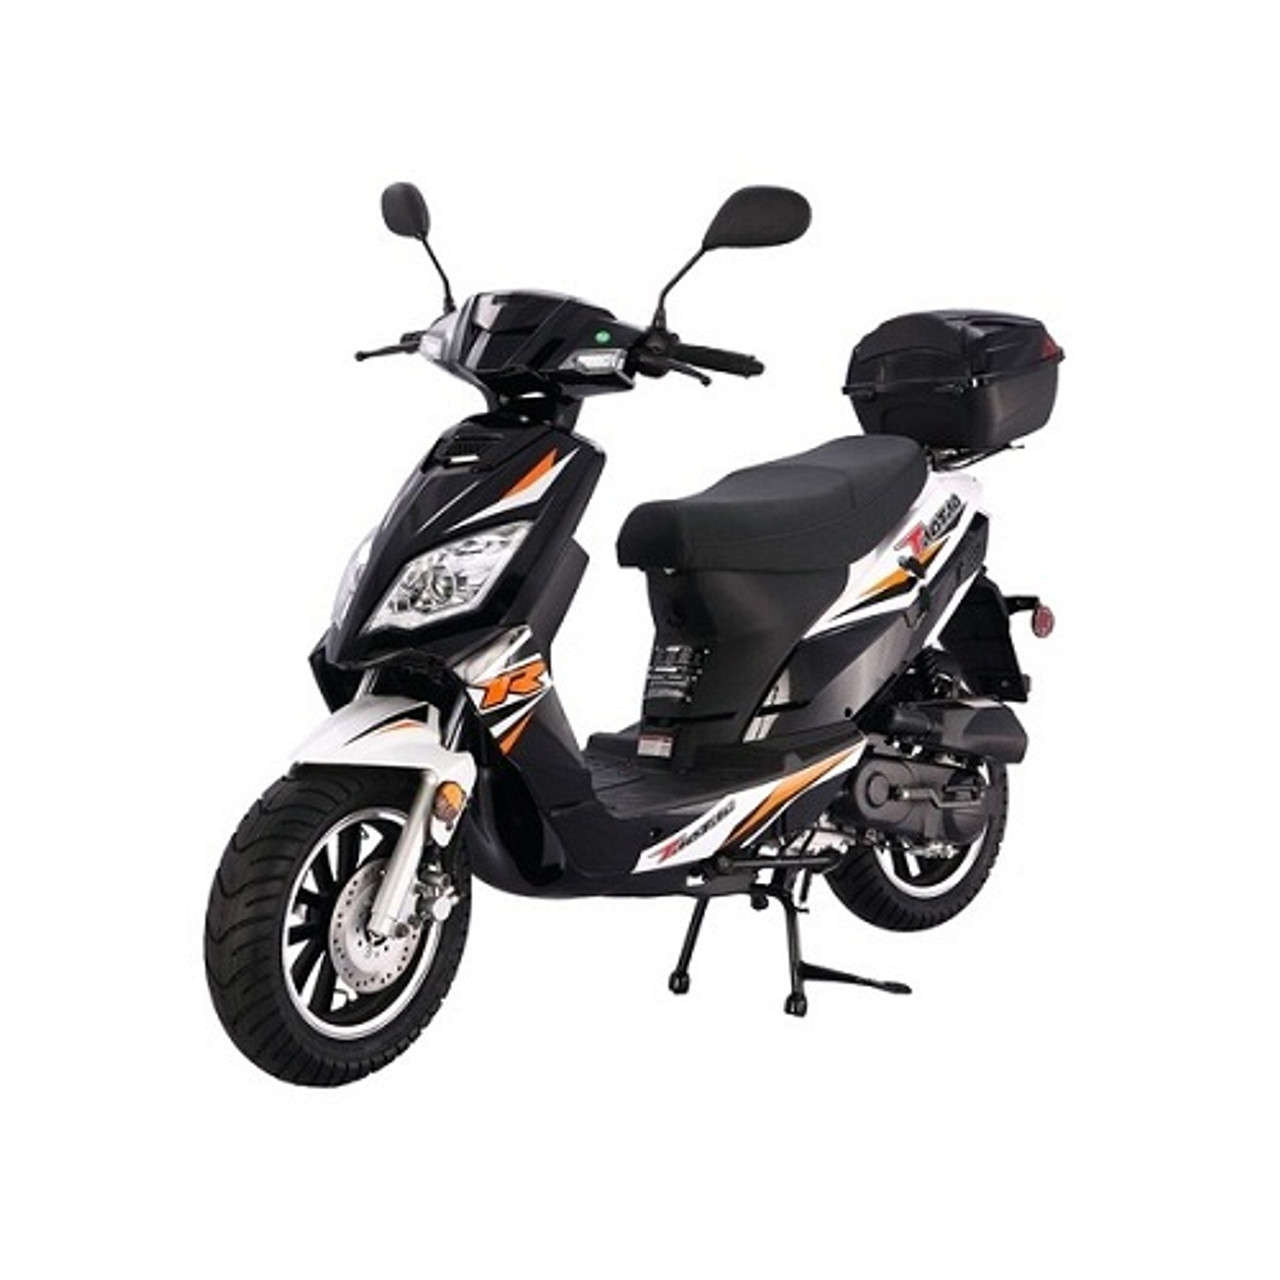 New Scooter 50cc